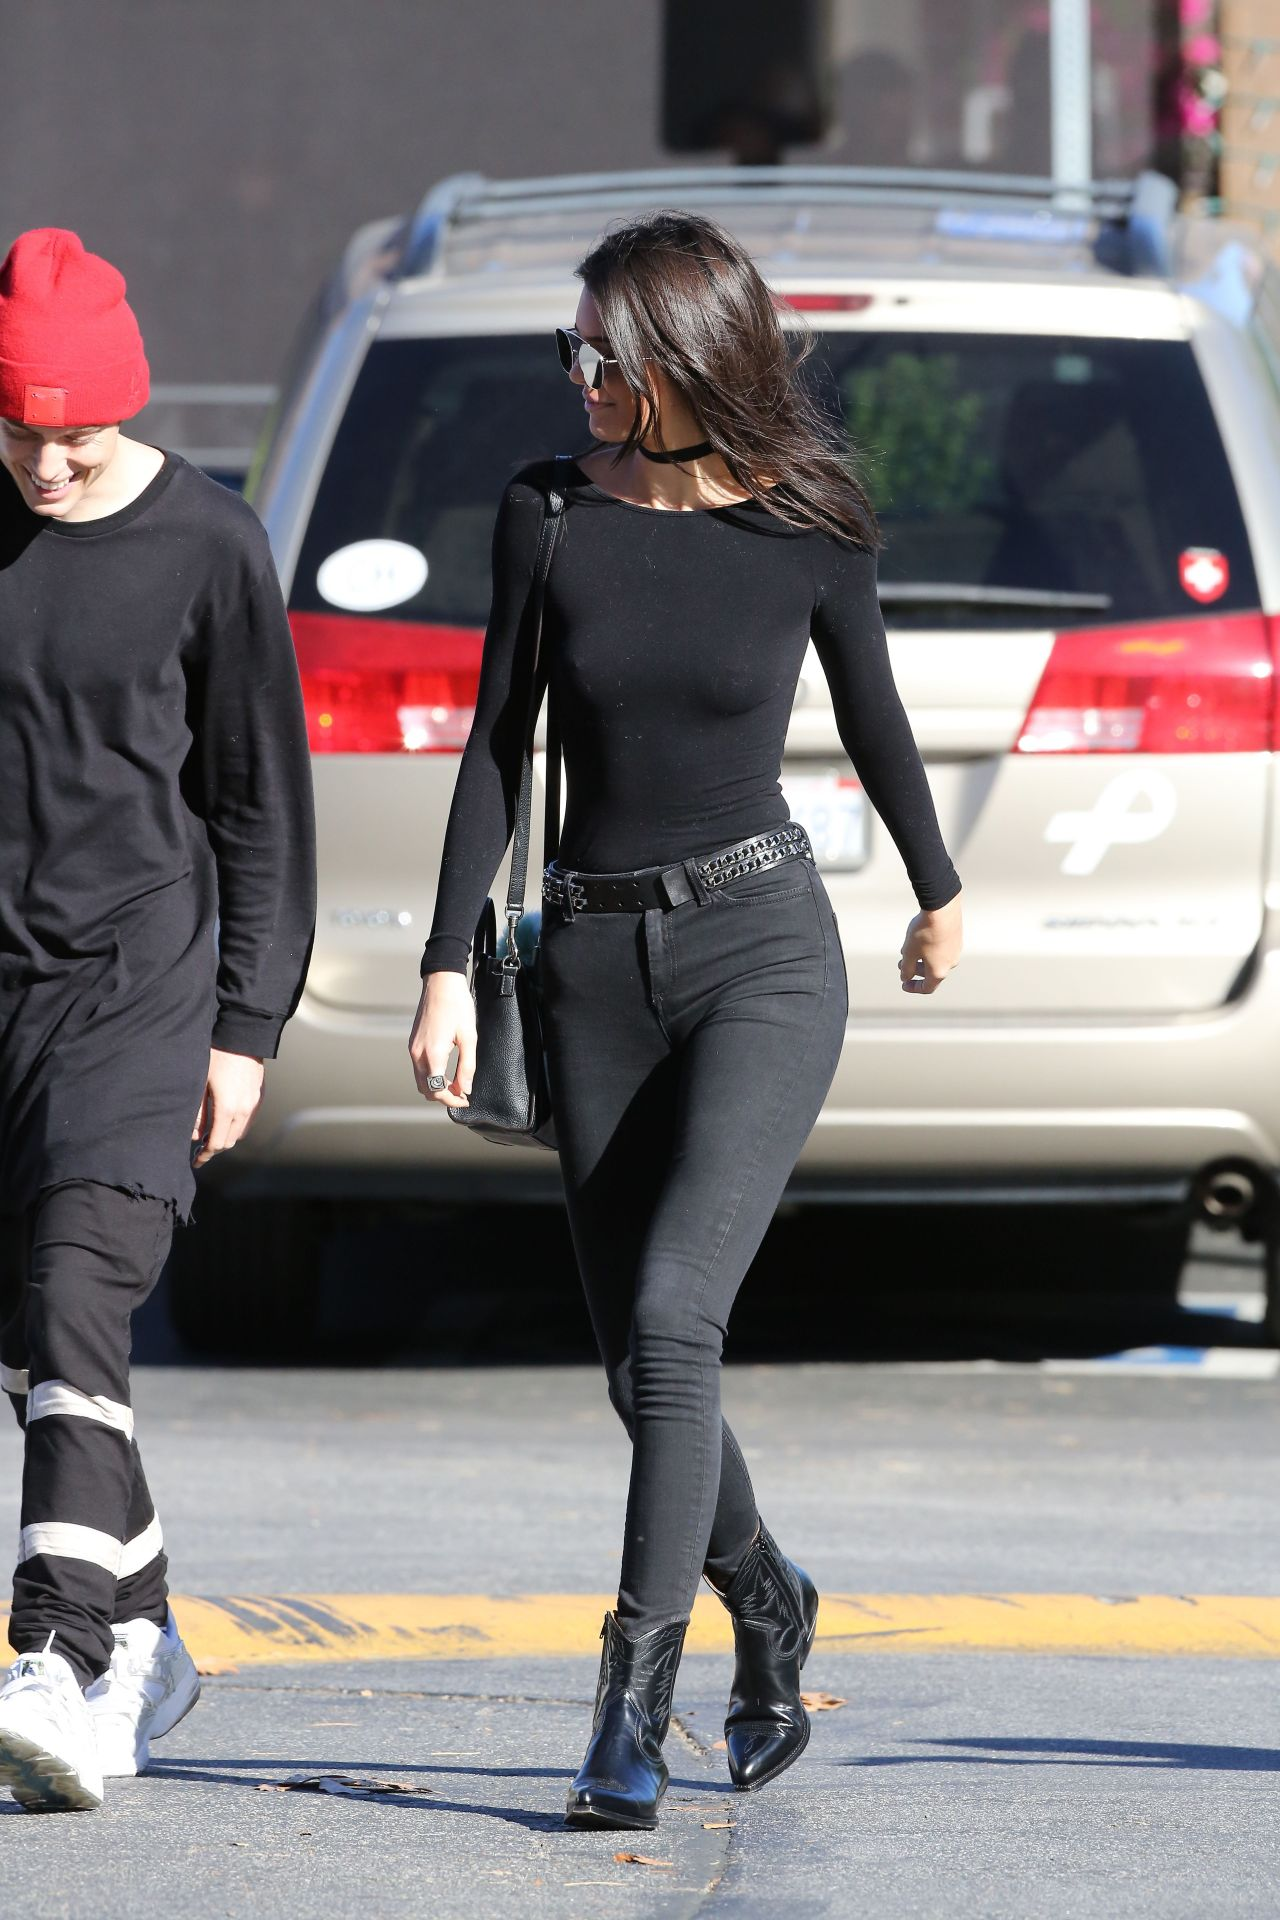 Kendall Jenner Booty In Tight Jeans Out In Calabasas 12